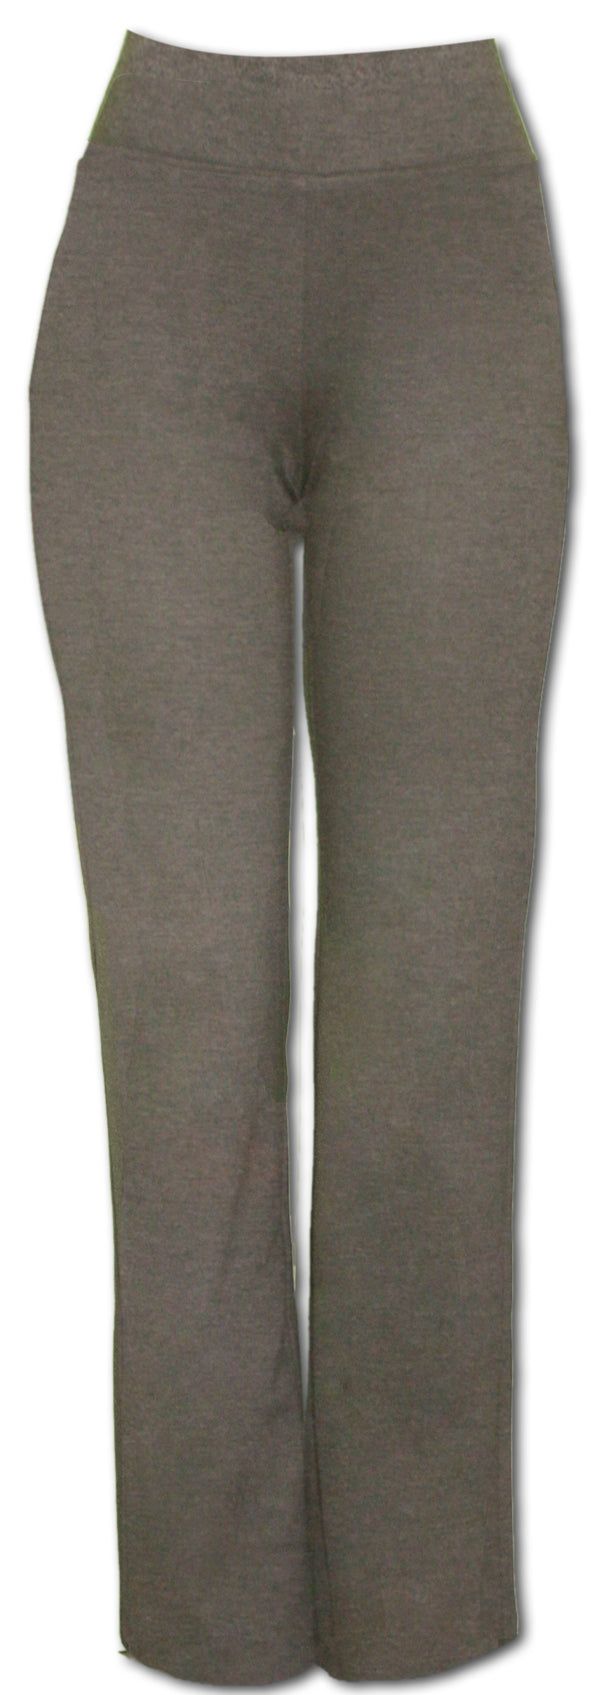 TrueSlim™ Tan Ponte Leggings for women